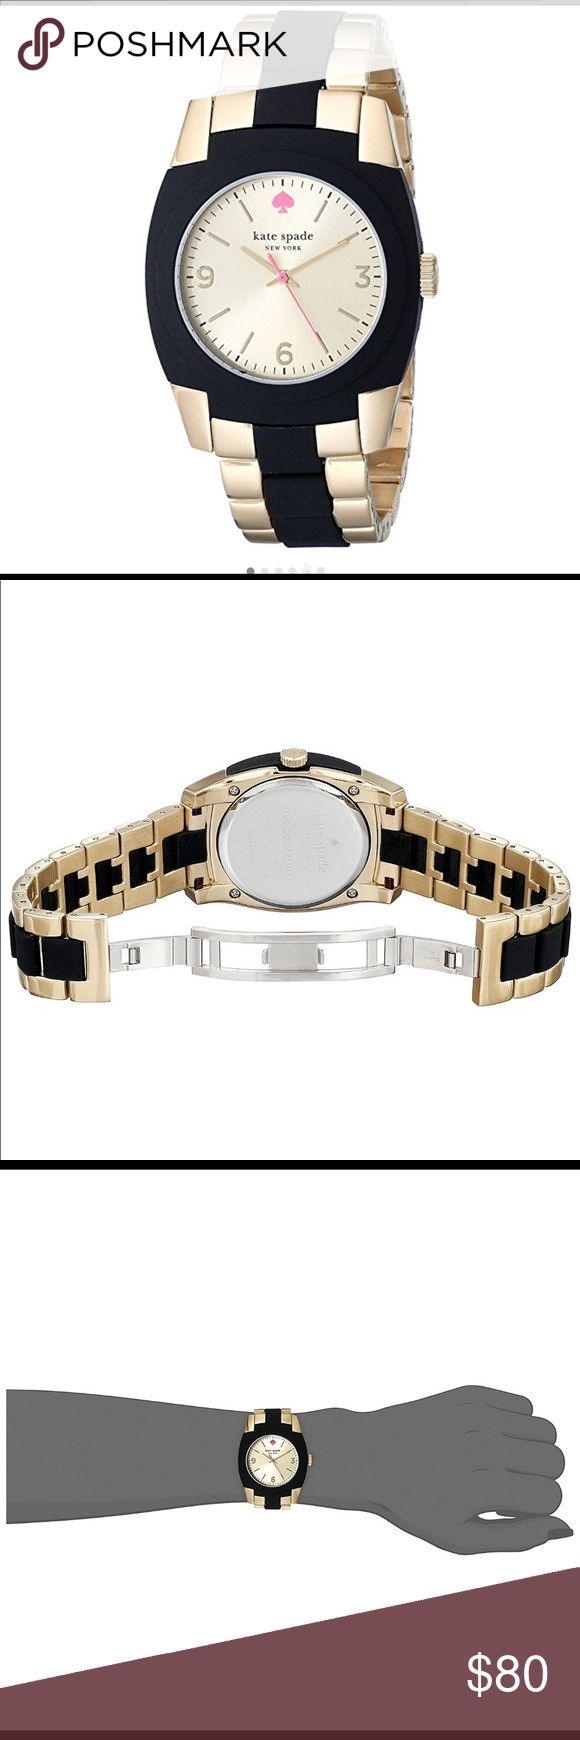 Kate Spade Skyline Gold Plated Watch! EUC Kate Spade Skyline Gold Plated Stainless Steel Black Watch!  Fits small to medium wrist. I do not have the box anymore.  Gold-plated and black polycarbonate watch featuring tonneau-shape case and round dial with spade logo at 12 o'clock 36 mm gold-plated stainless steel case with mineral dial window Japanese quartz movement with analog display Triple-row bracelet with deployant-clasp closure Water resistant to 10 m (33 ft) kate spade Accessories…